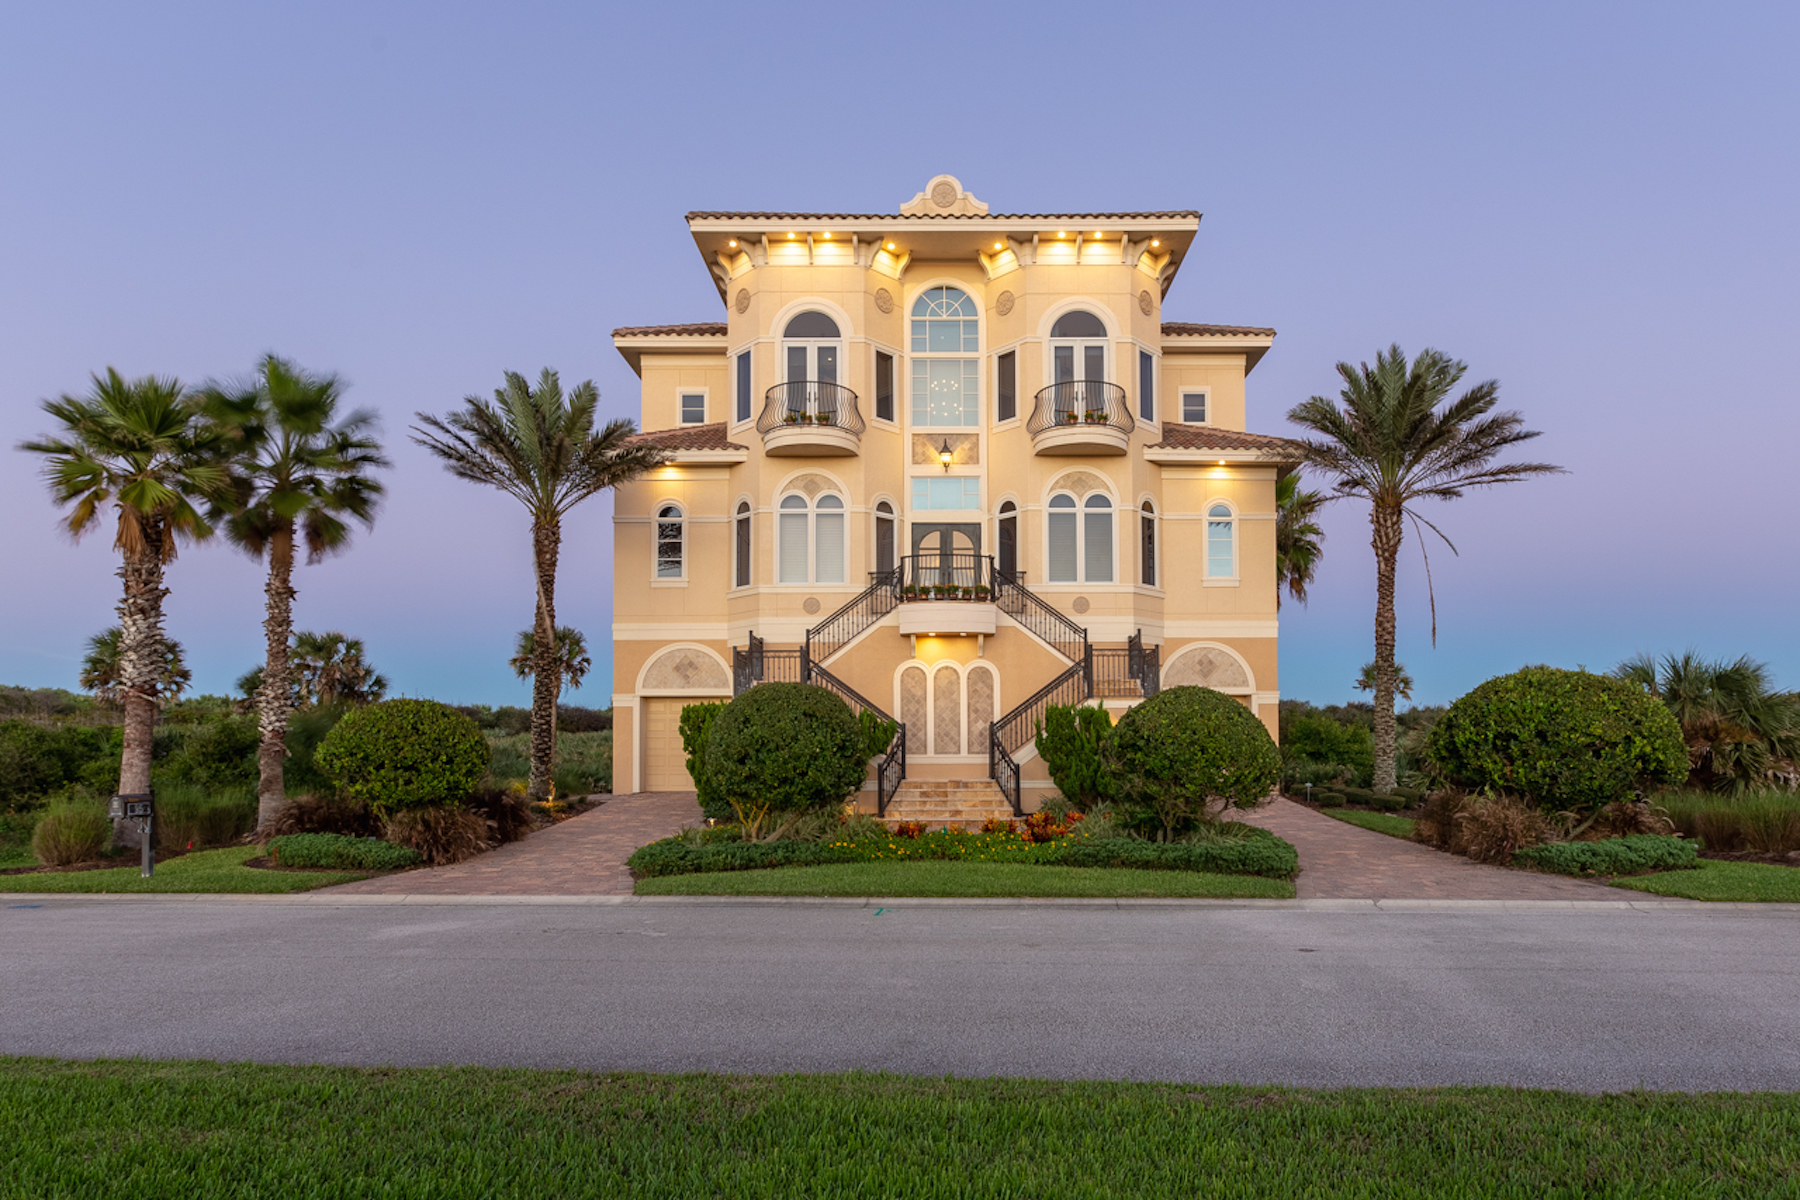 Single Family Homes for Sale at Grand Living on the Ocean 95 Calle Del Sur Palm Coast, Florida 32137 United States